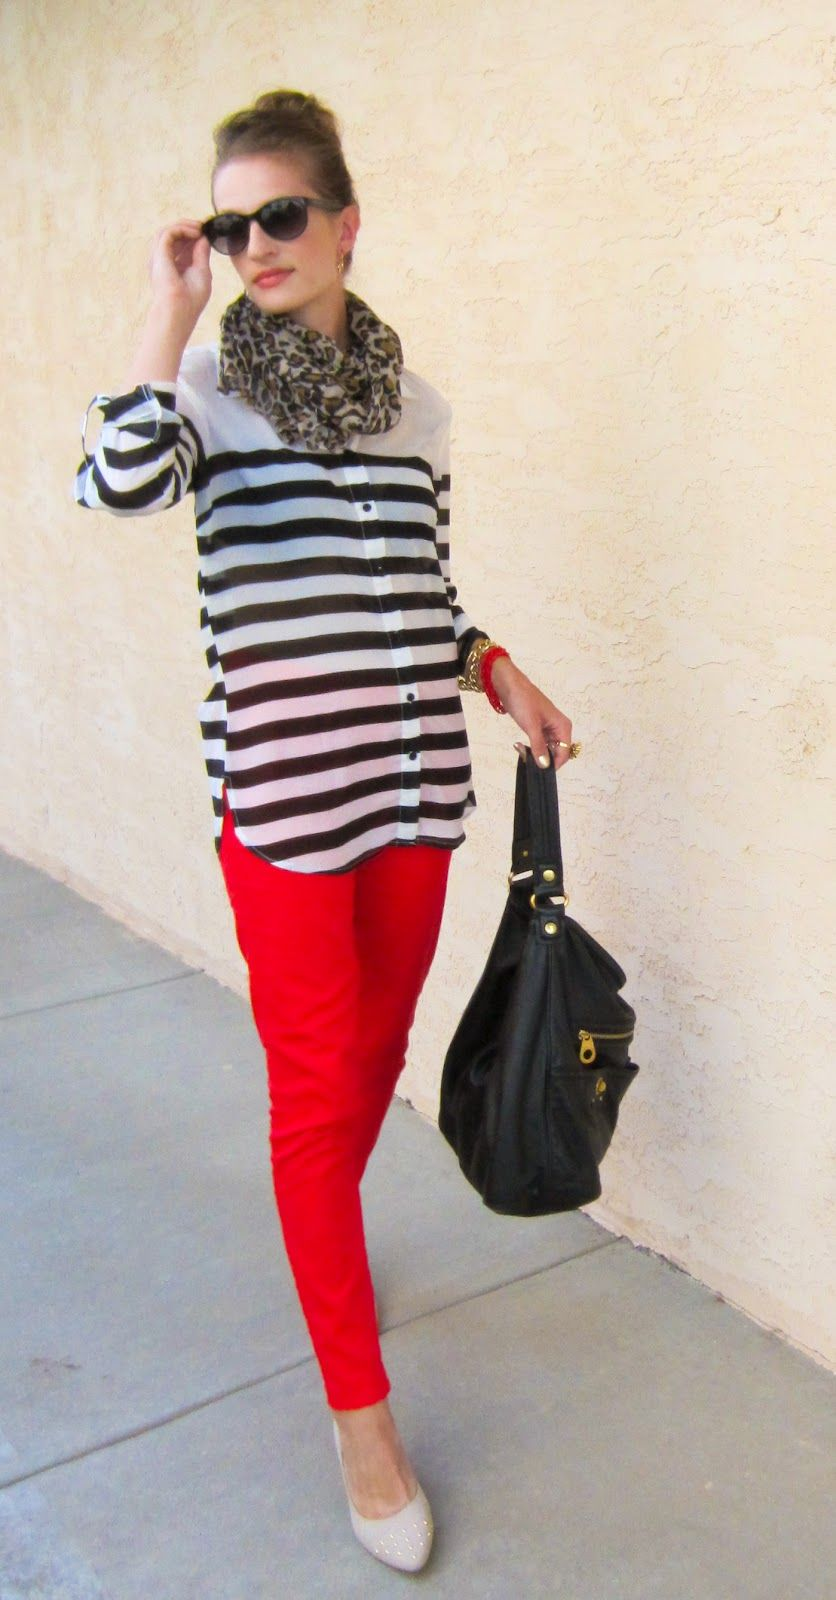 Inherited Jeans - stripes and leopard